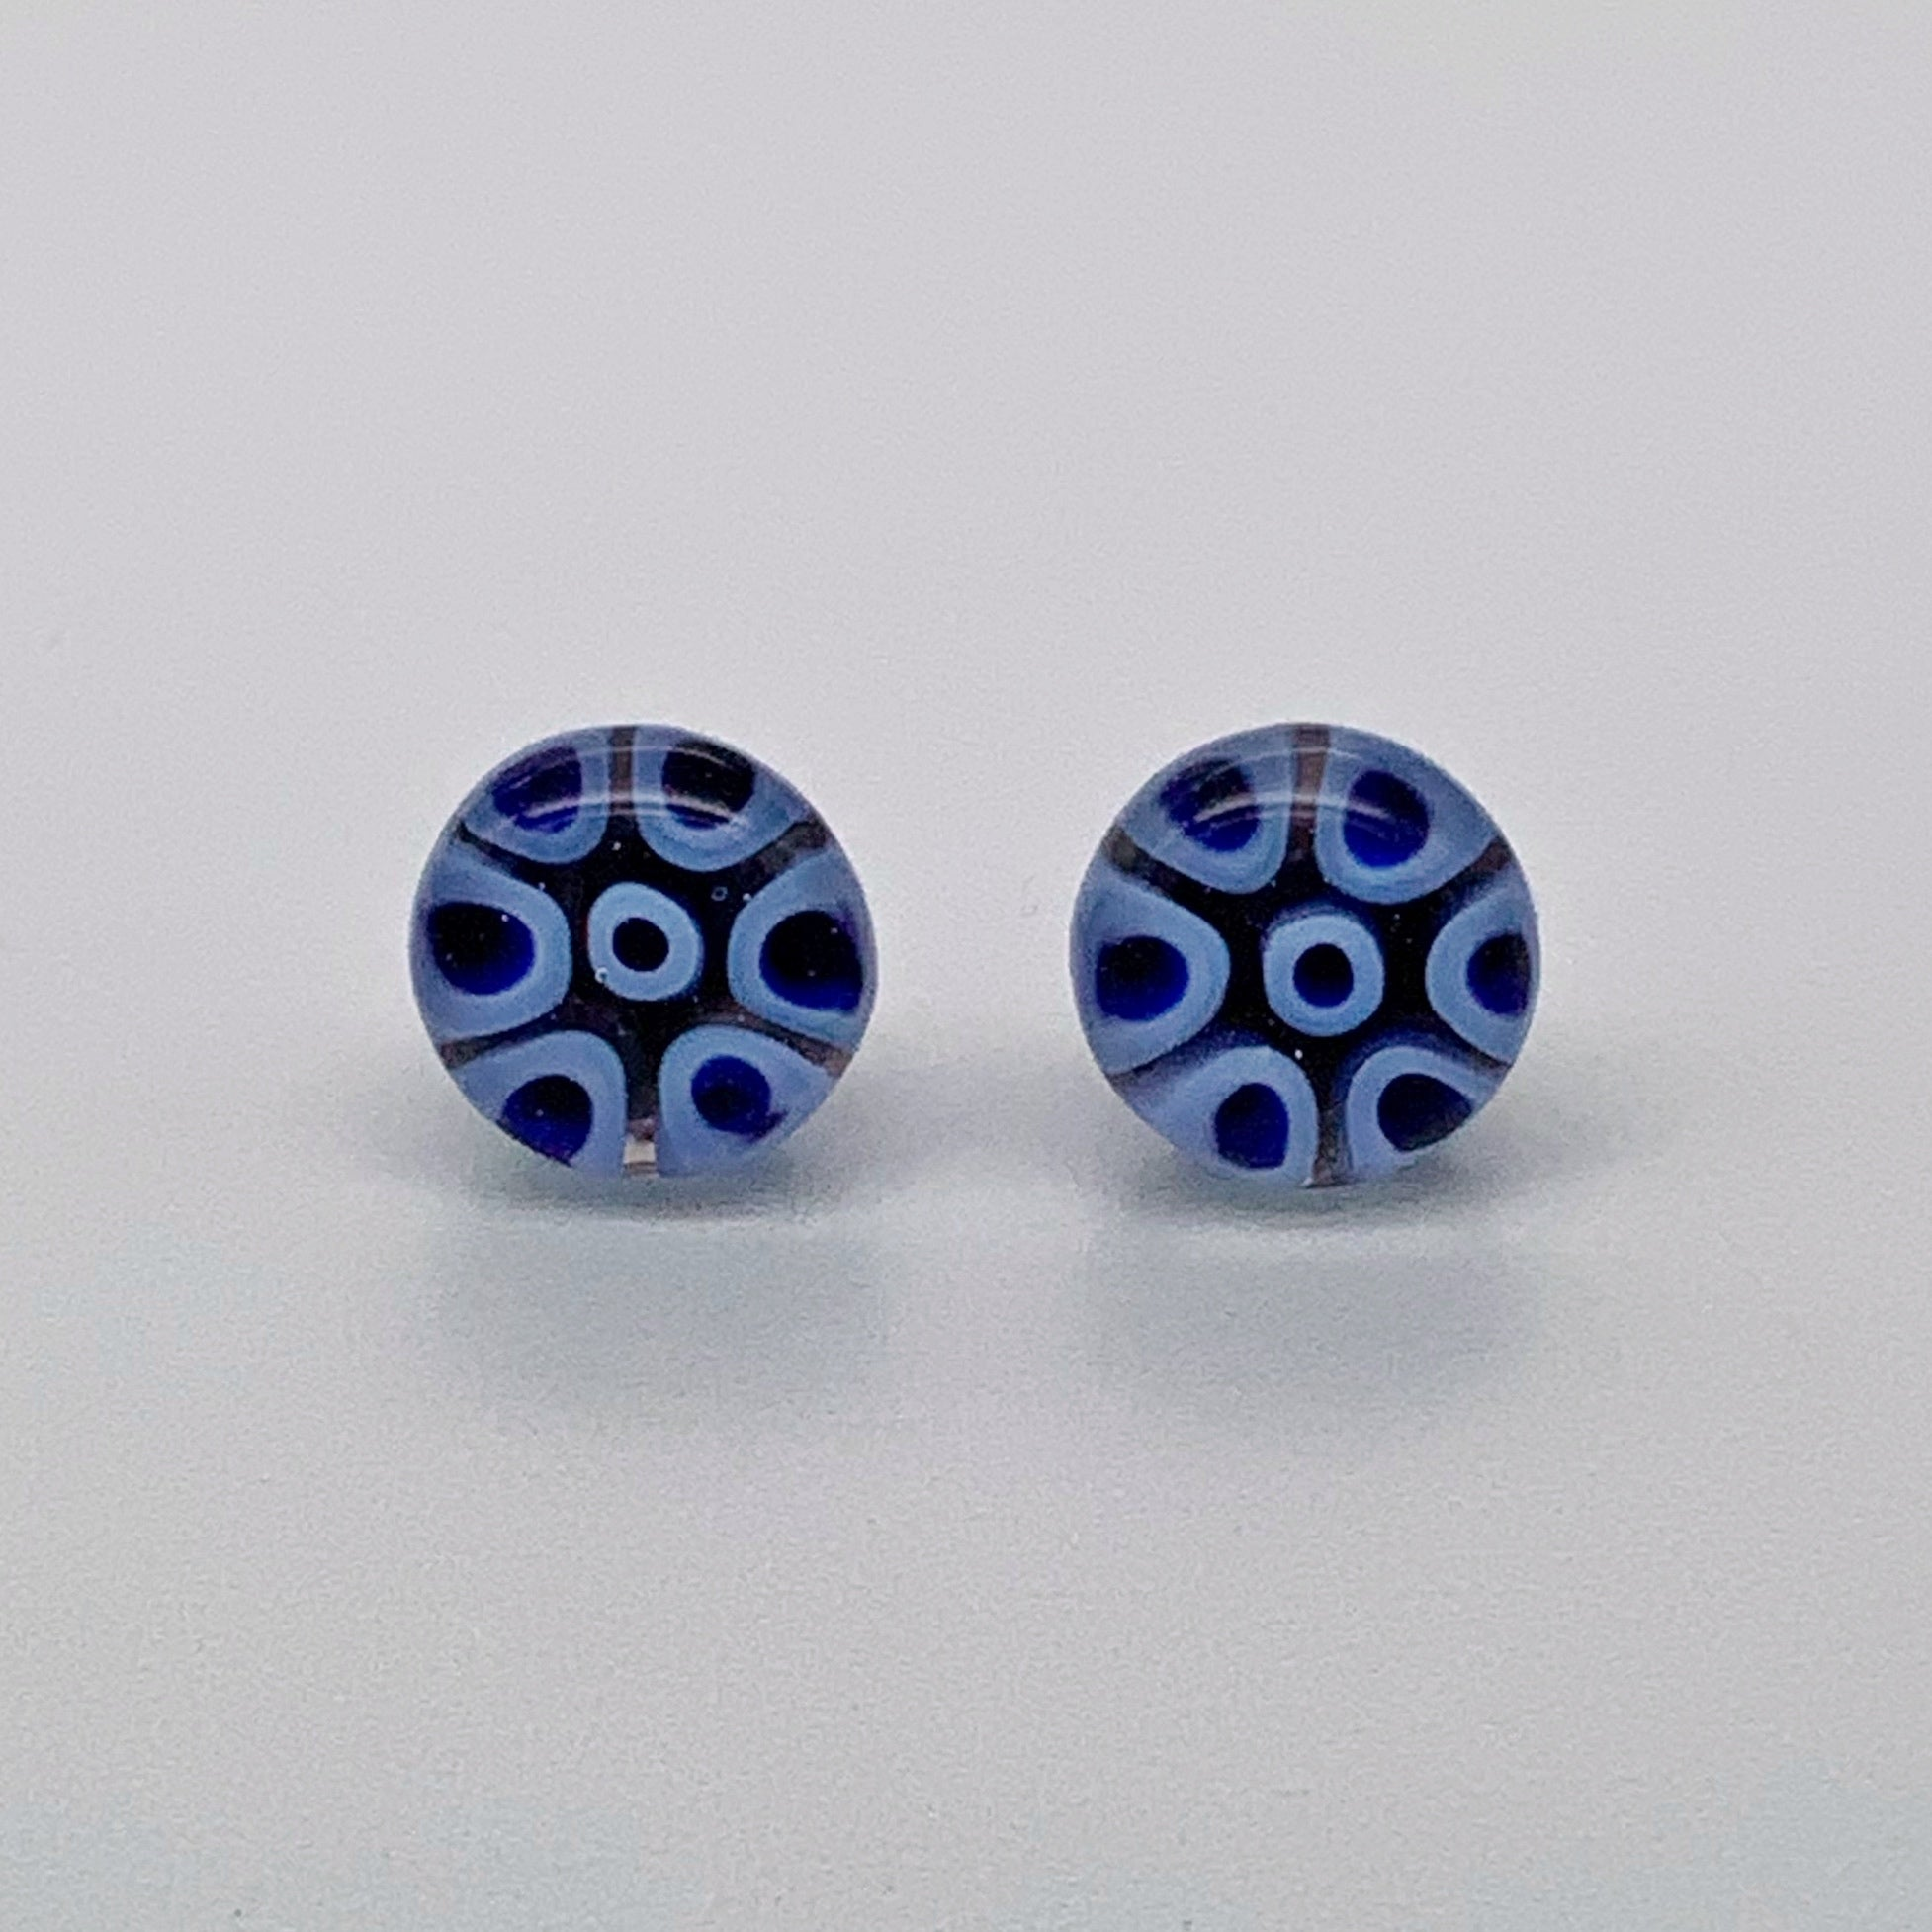 Fused murrini stud earrings in blue caviar